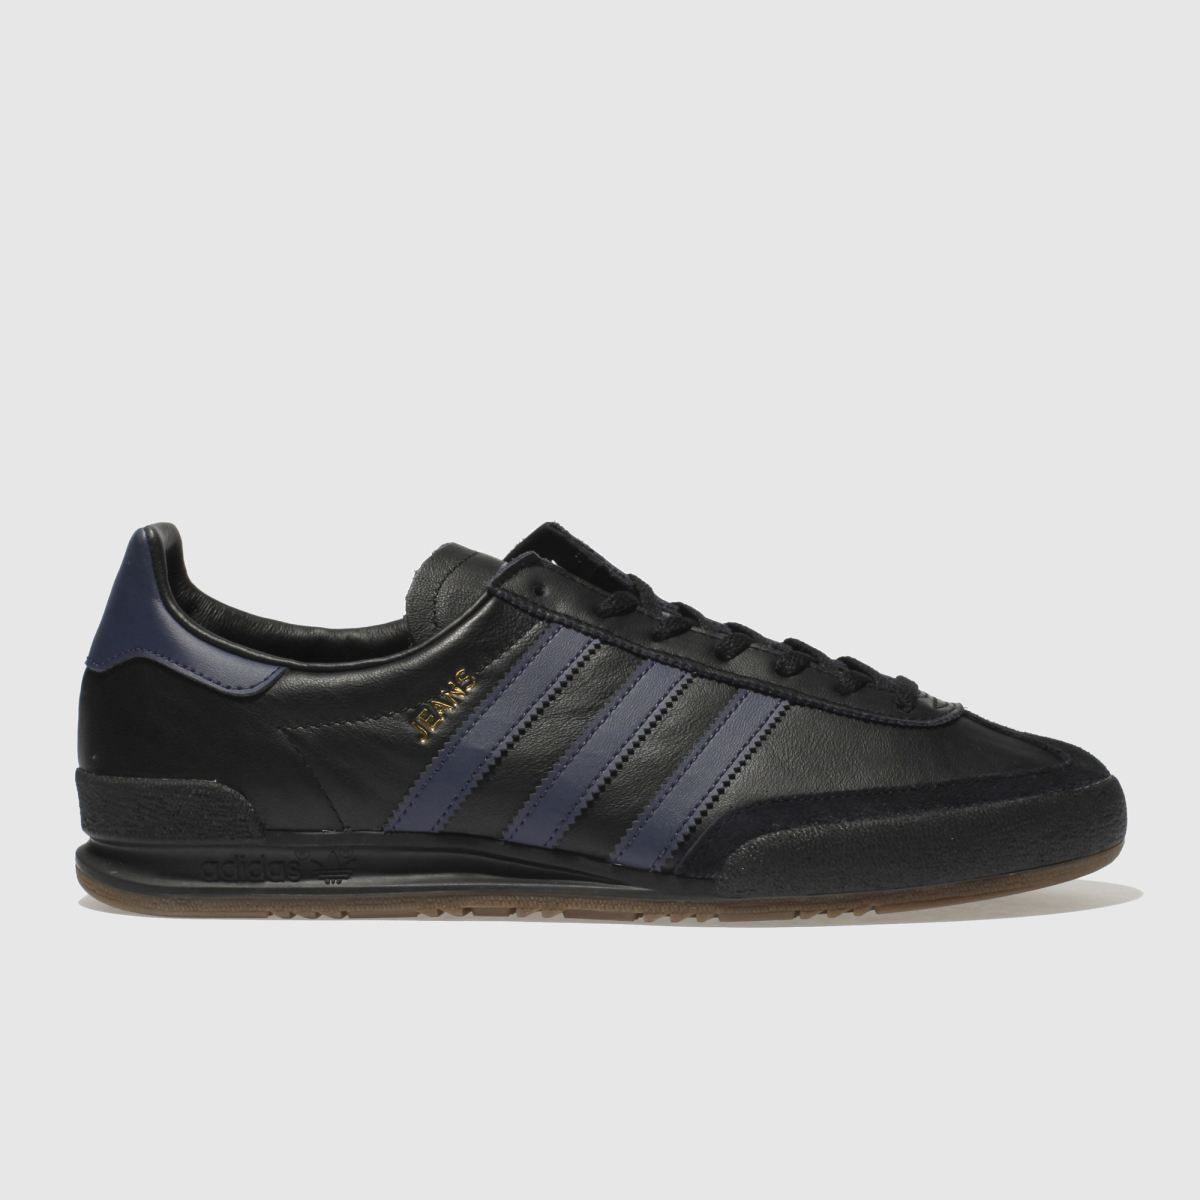 Adidas Black And Blue Jeans Trainers